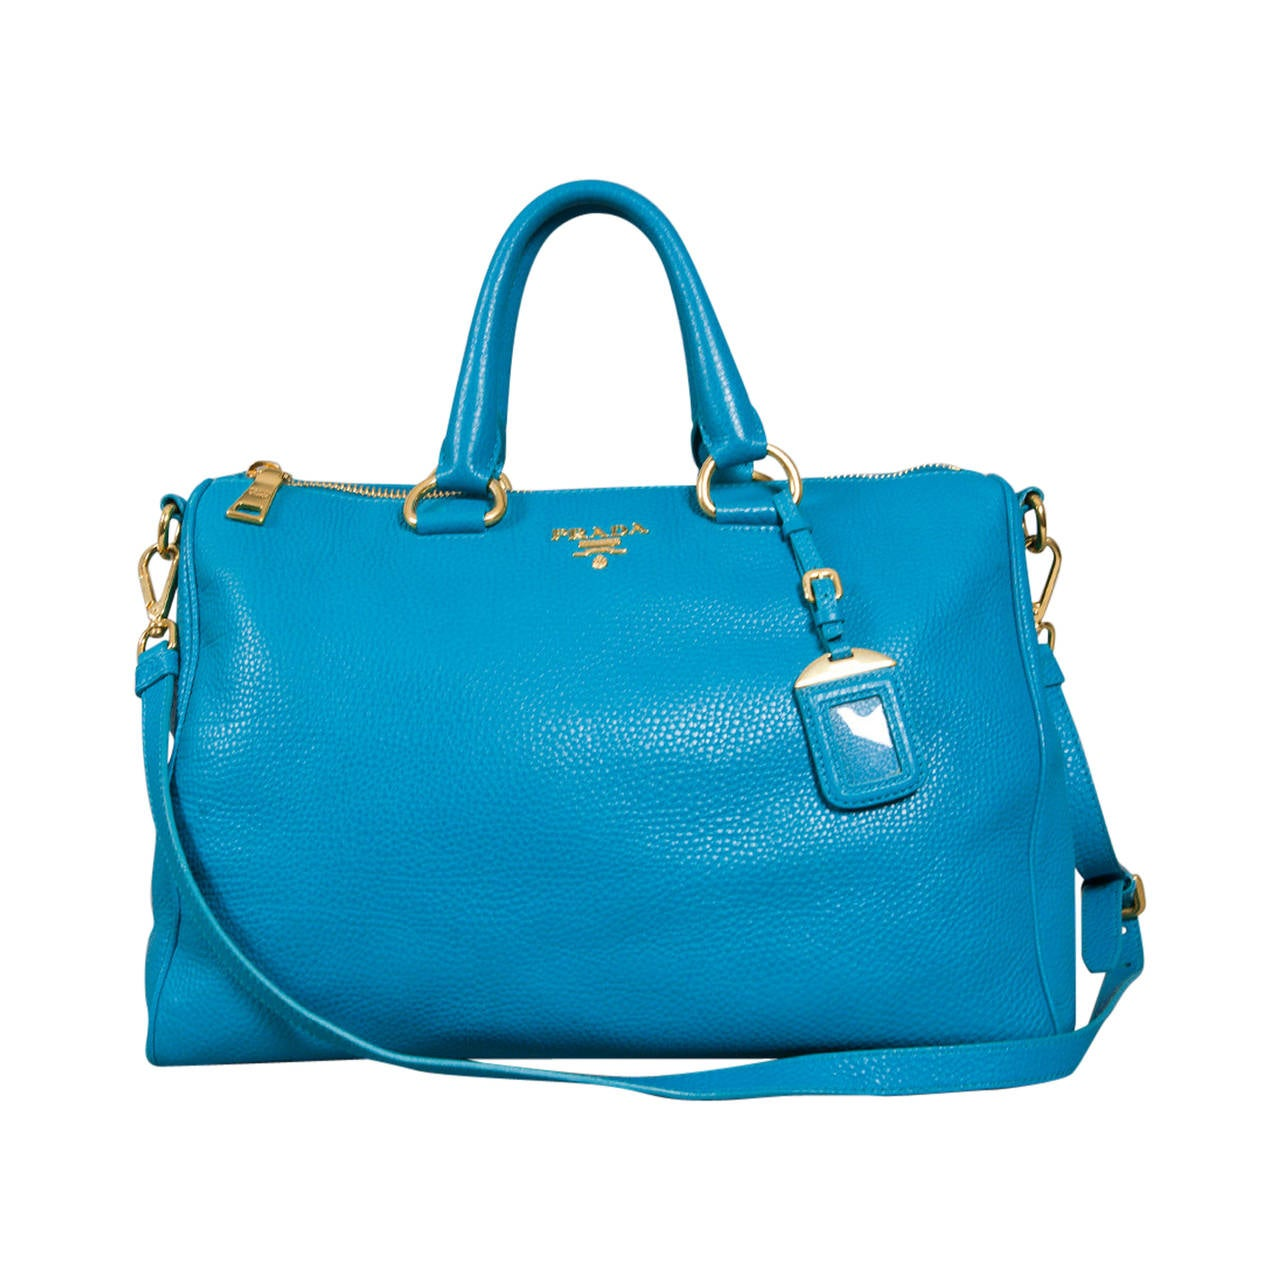 Turquoise Leather Shoulder Bag 83